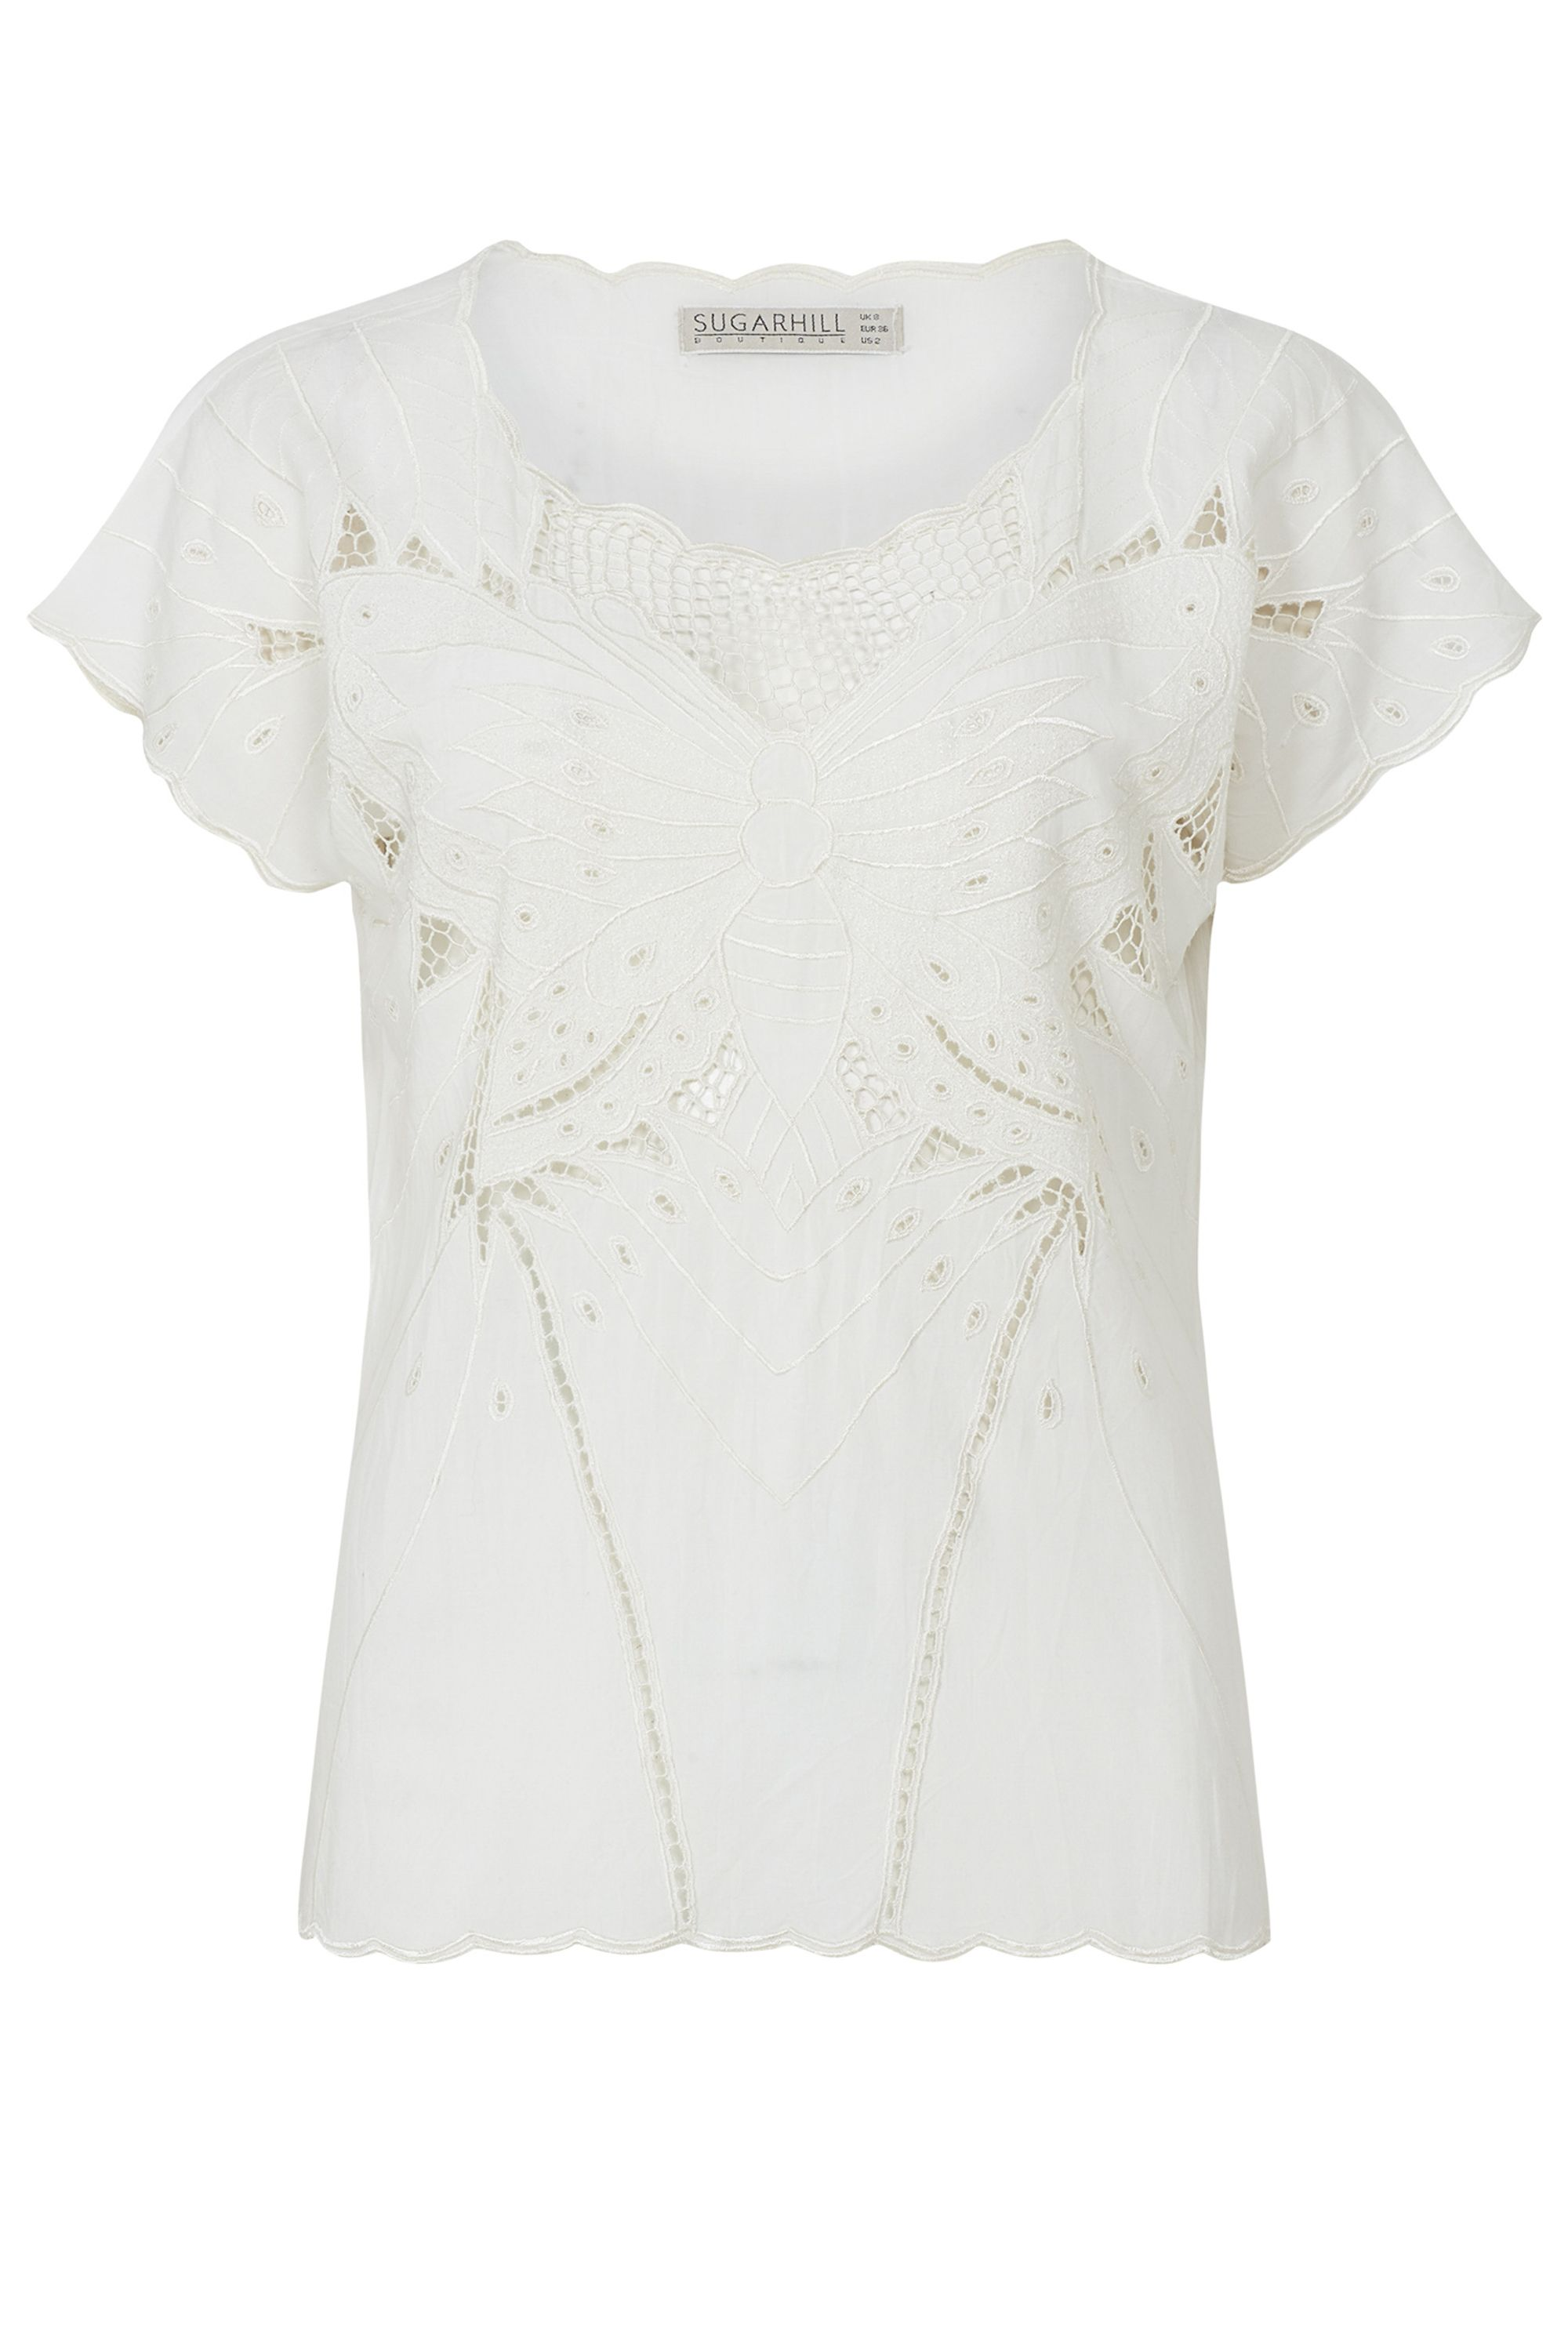 Sugarhill Boutique Butterfly Embroidered Top, Cream